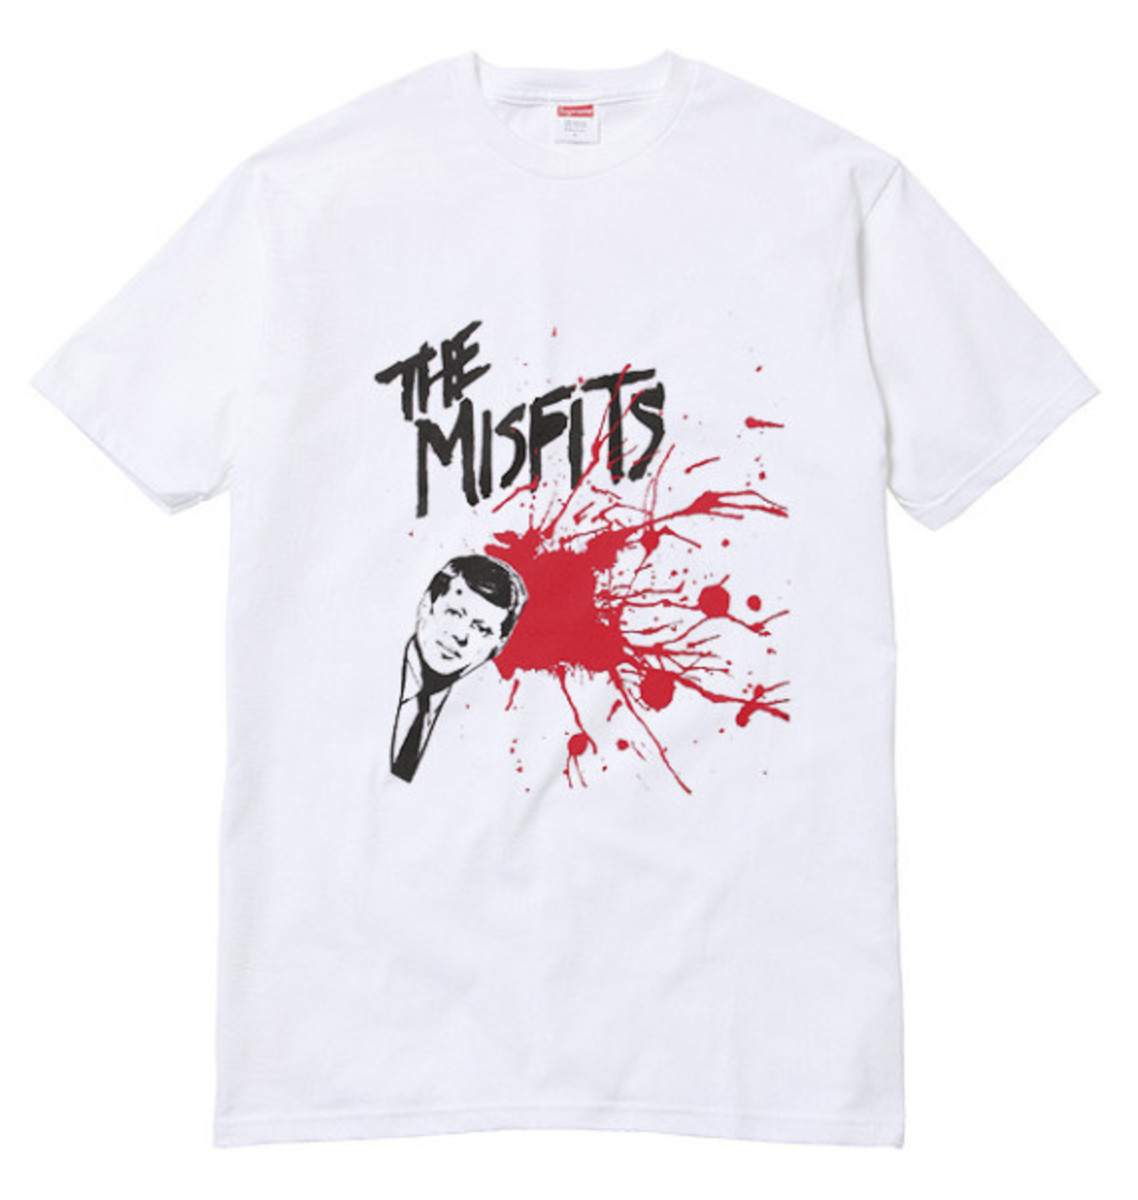 the-misfits-supreme-spring-summer-2013-capsule-collection-07